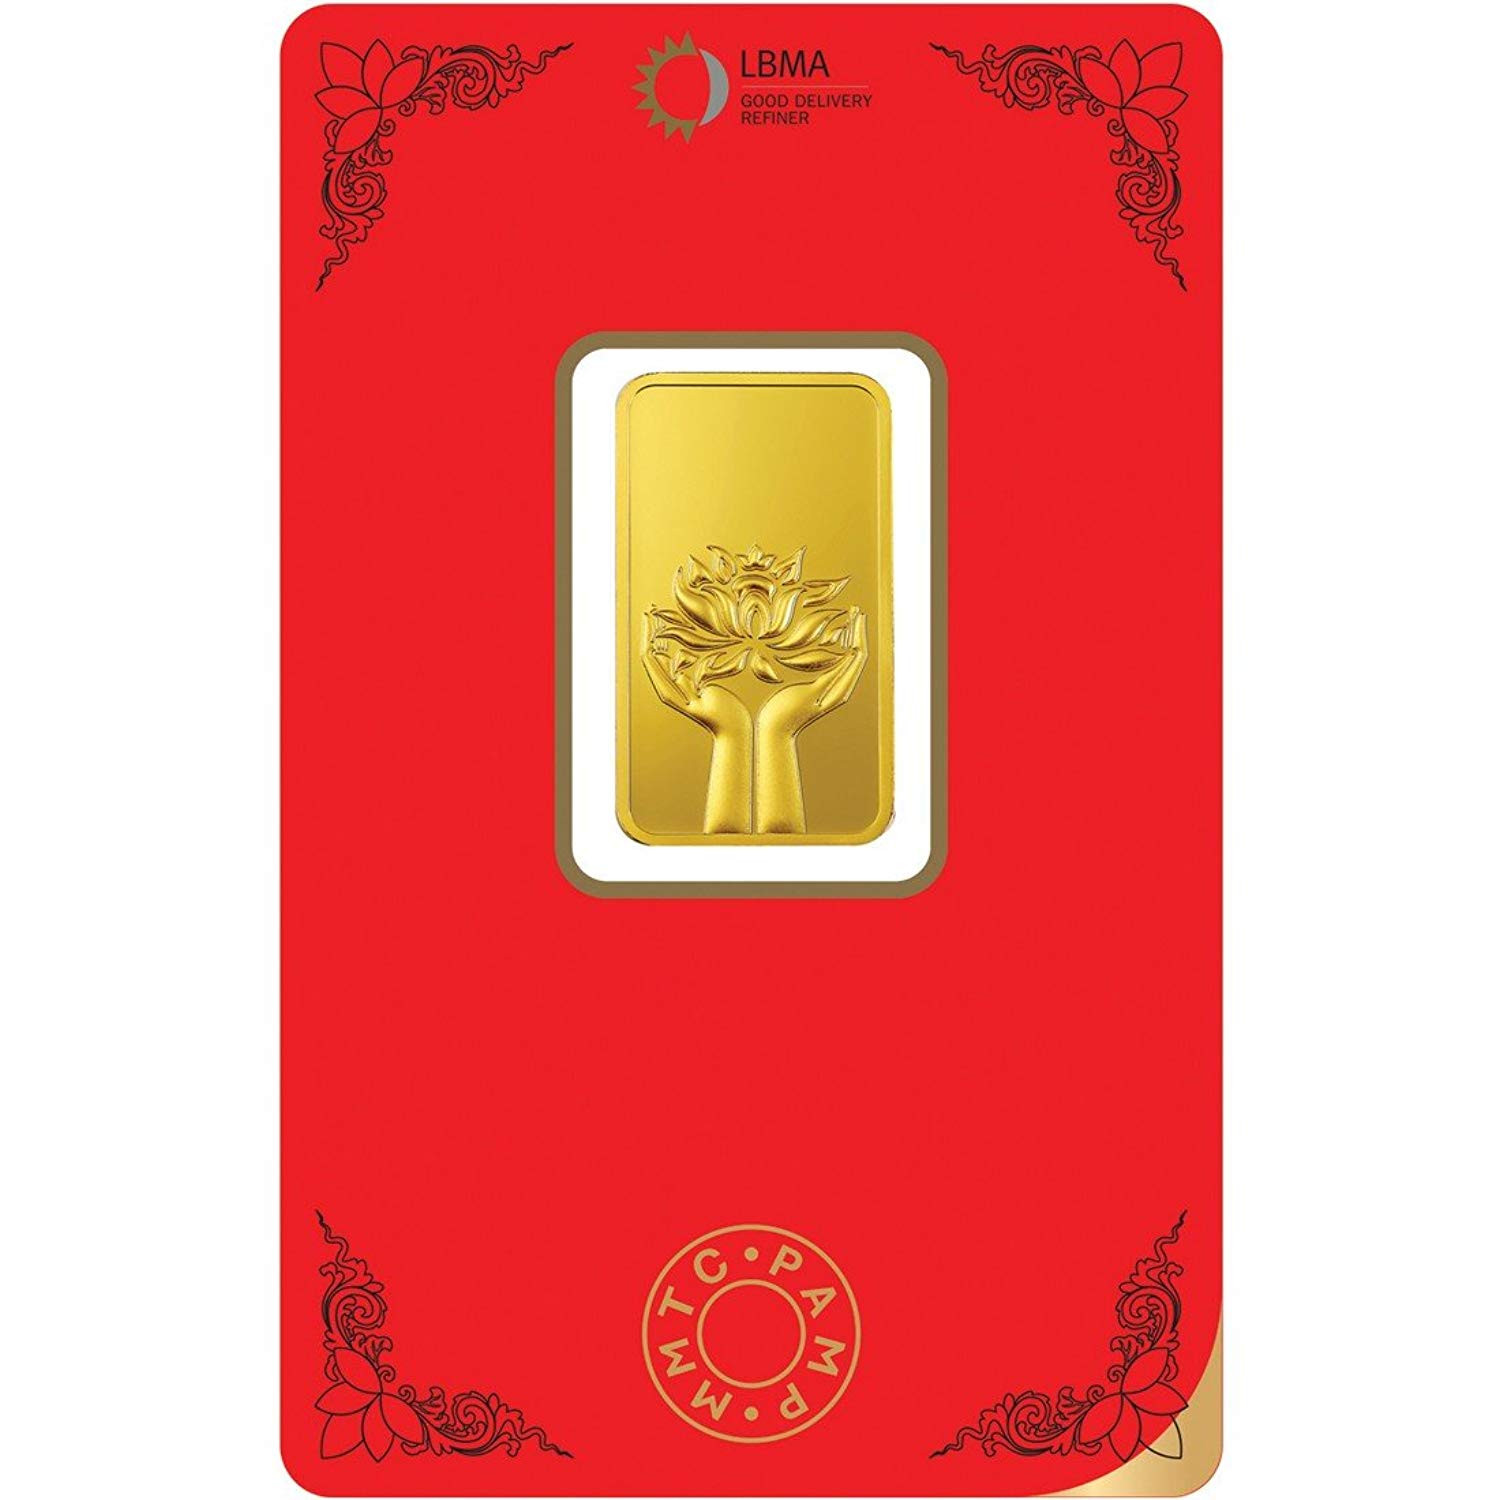 Buy Mmtc Pamp Gold Ingot Bar Of 10 Grams In 24 Karat 999 9